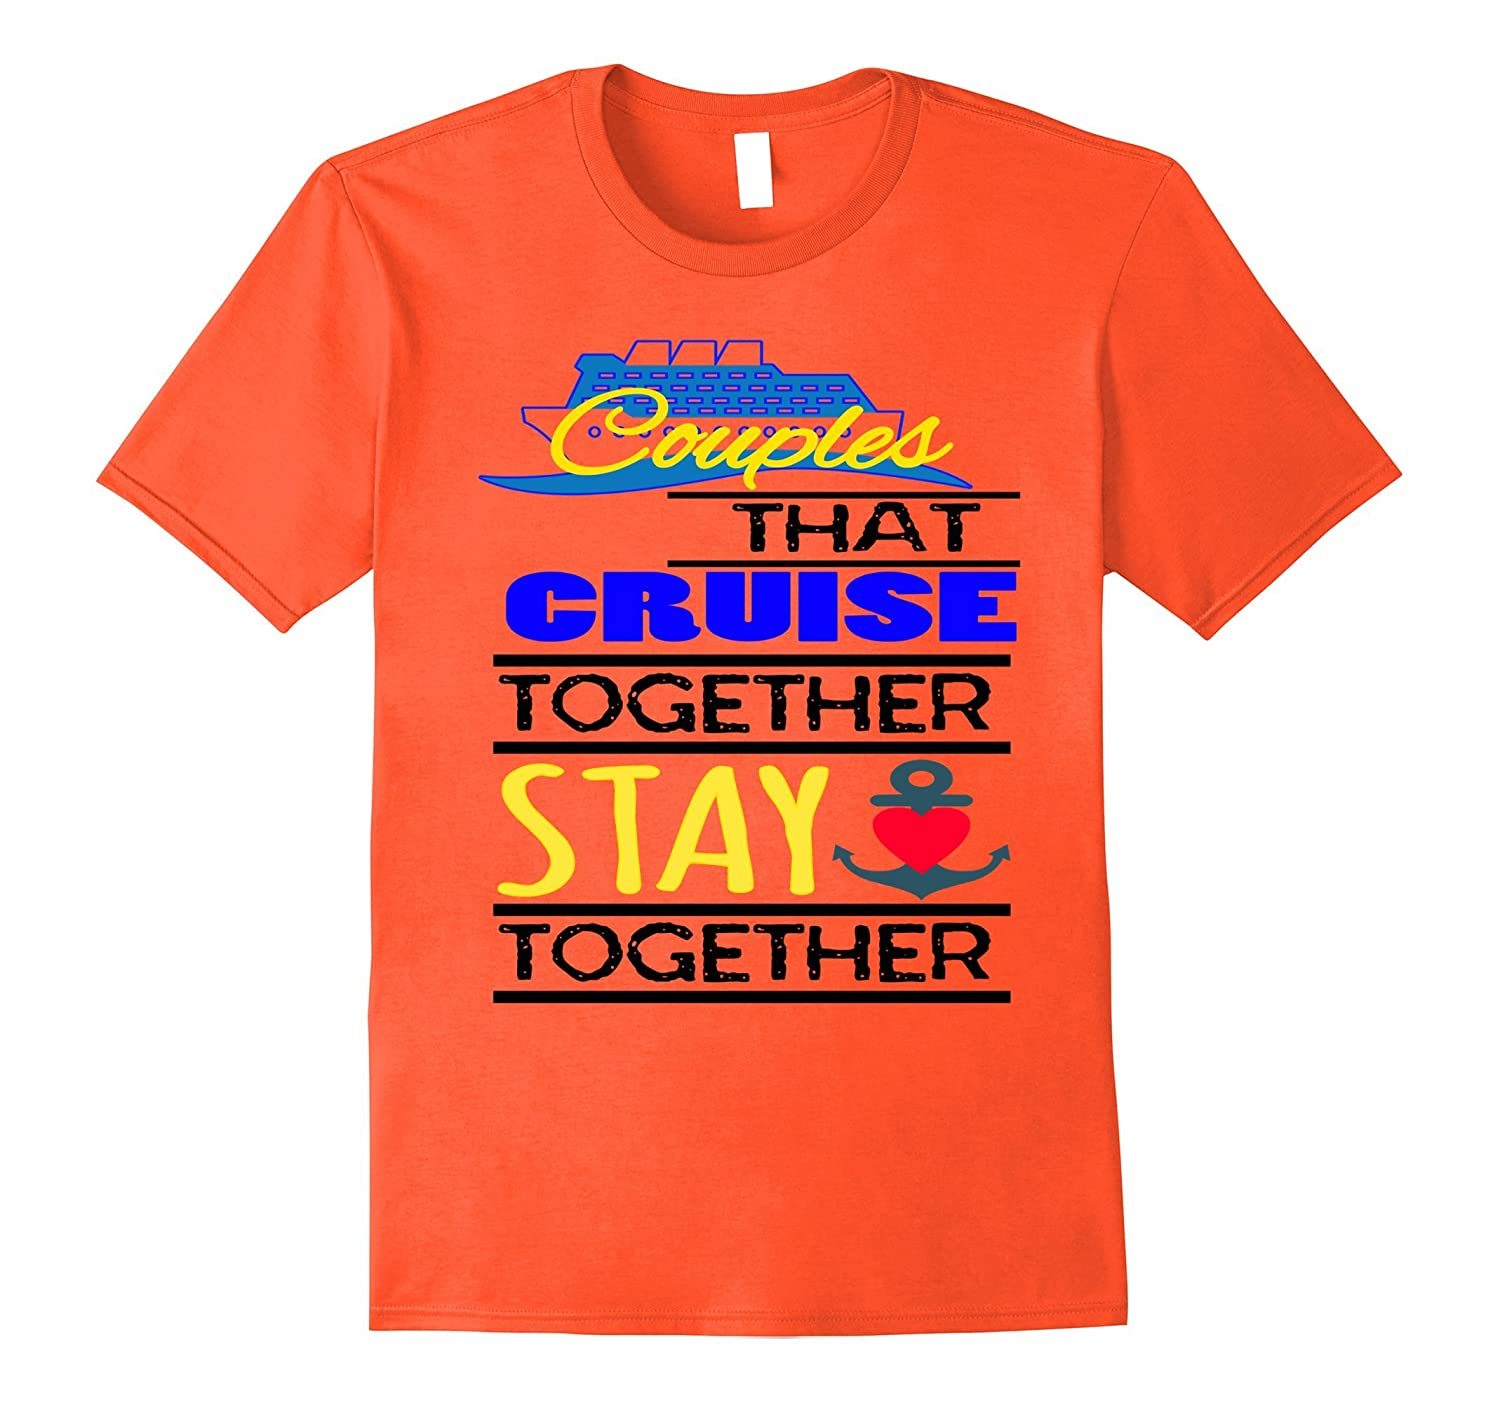 88e6d9cf Couples That Cruise Together Stay Together Novelty Tshirt-CL – Colamaga